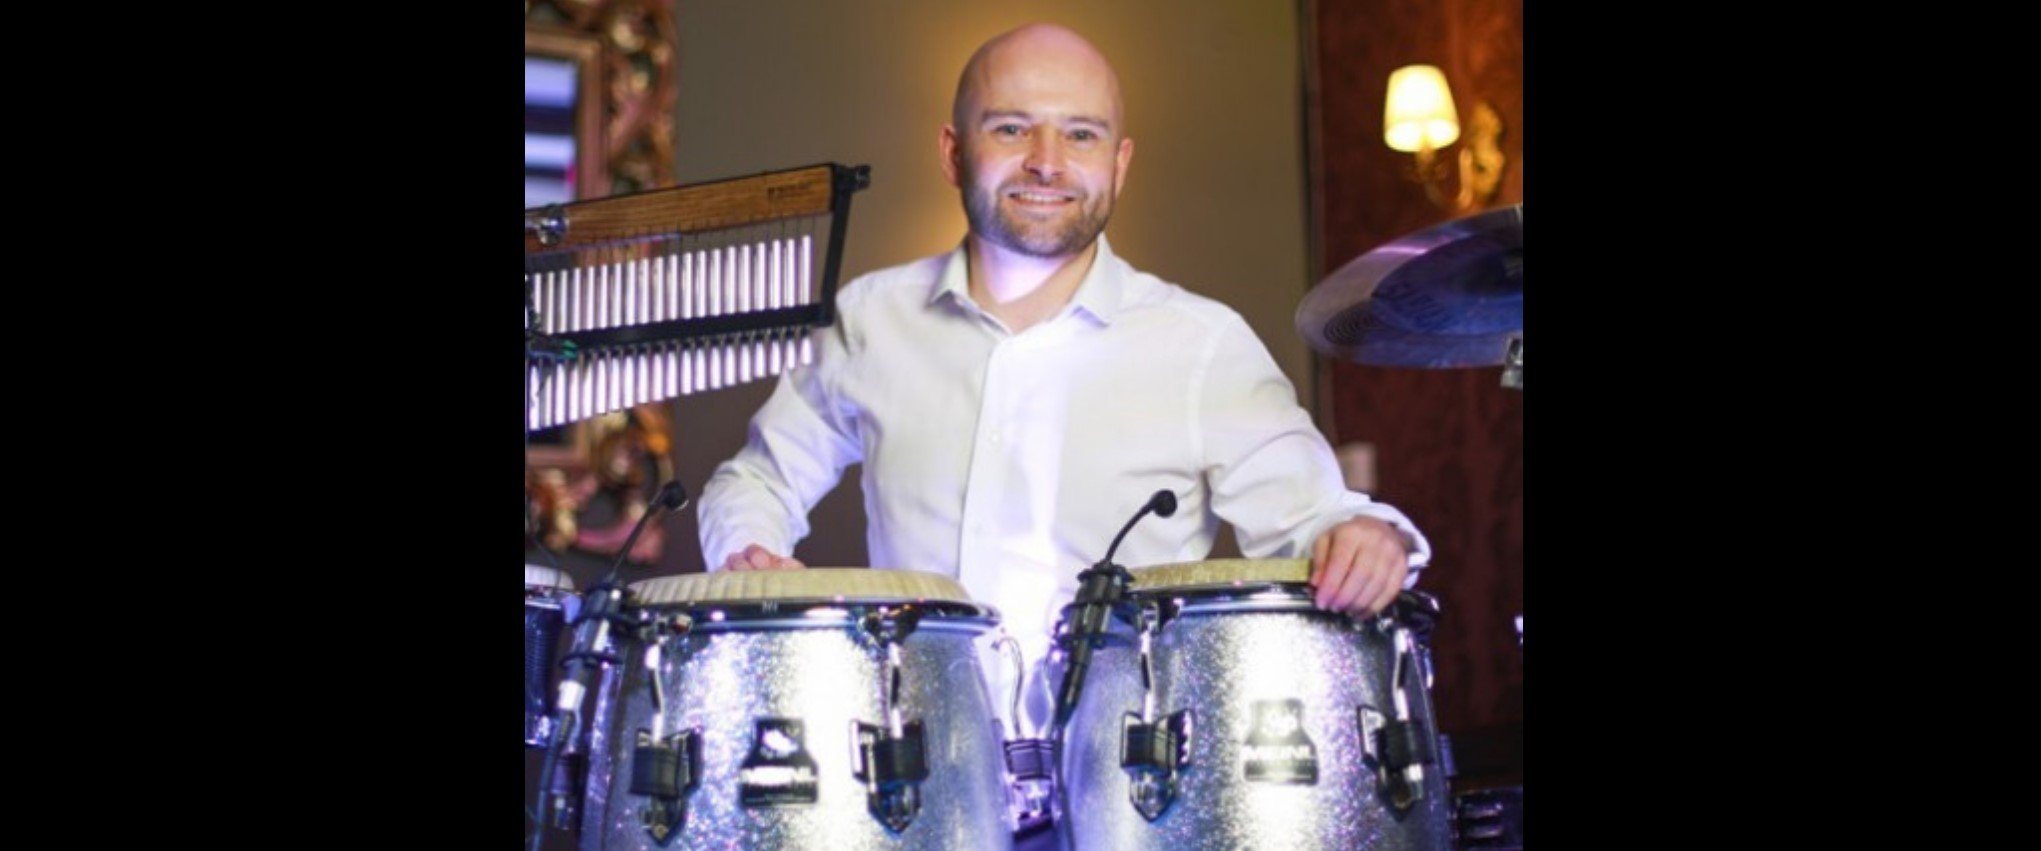 Bongo and percussionist for hire